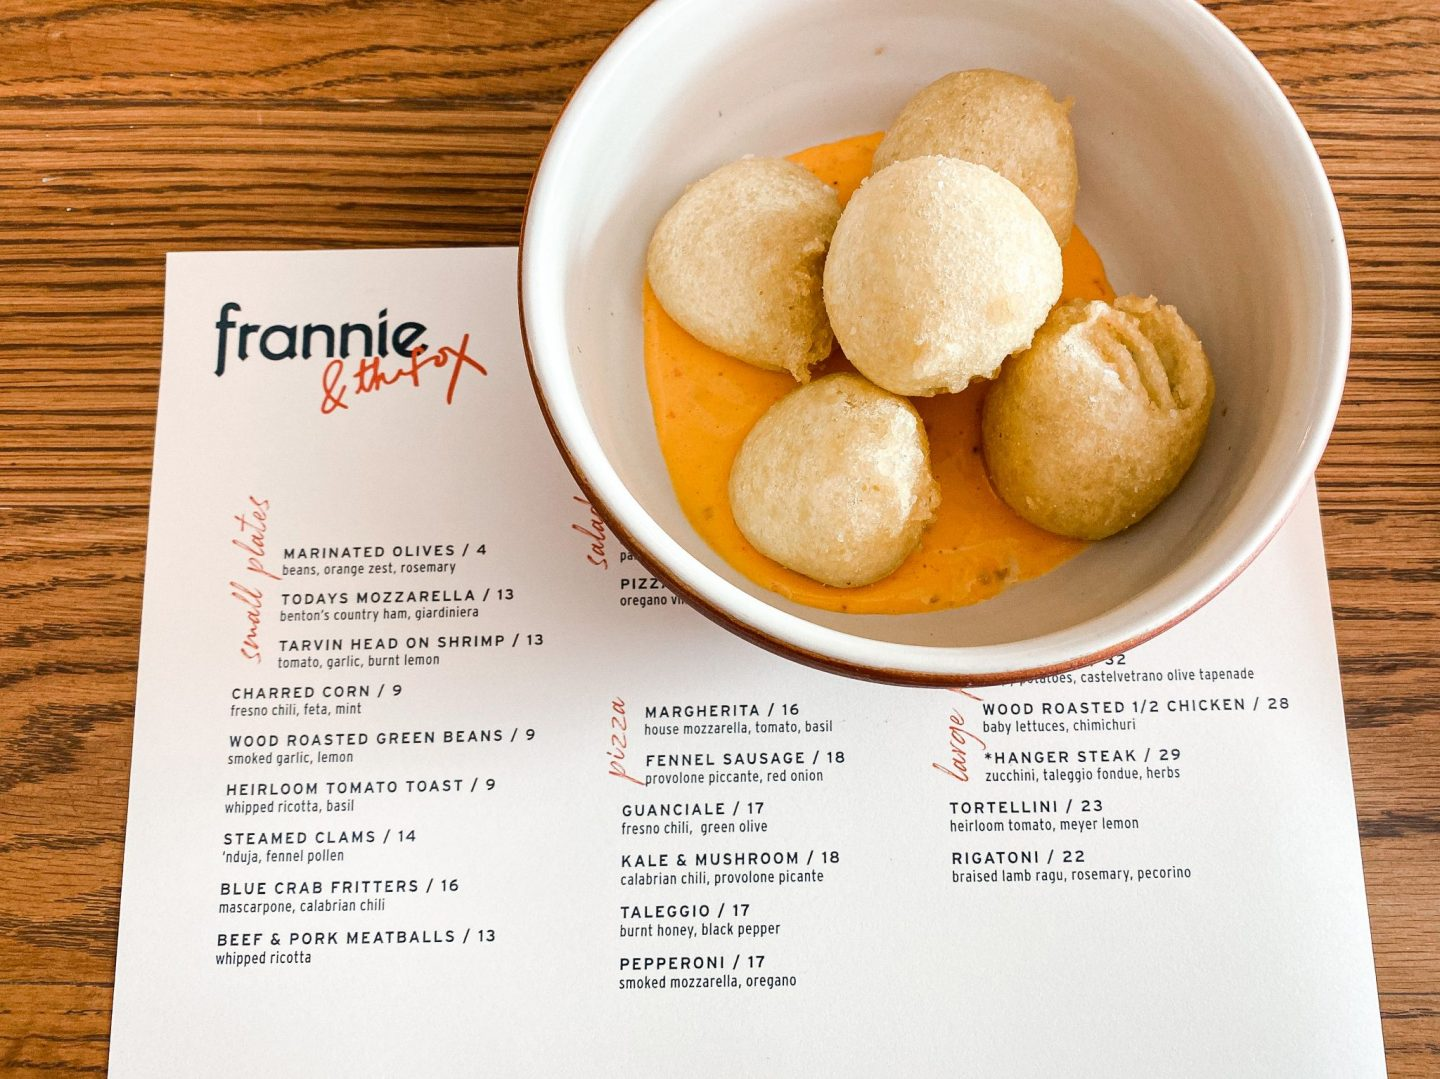 Frannie & Fox Crab Fritters